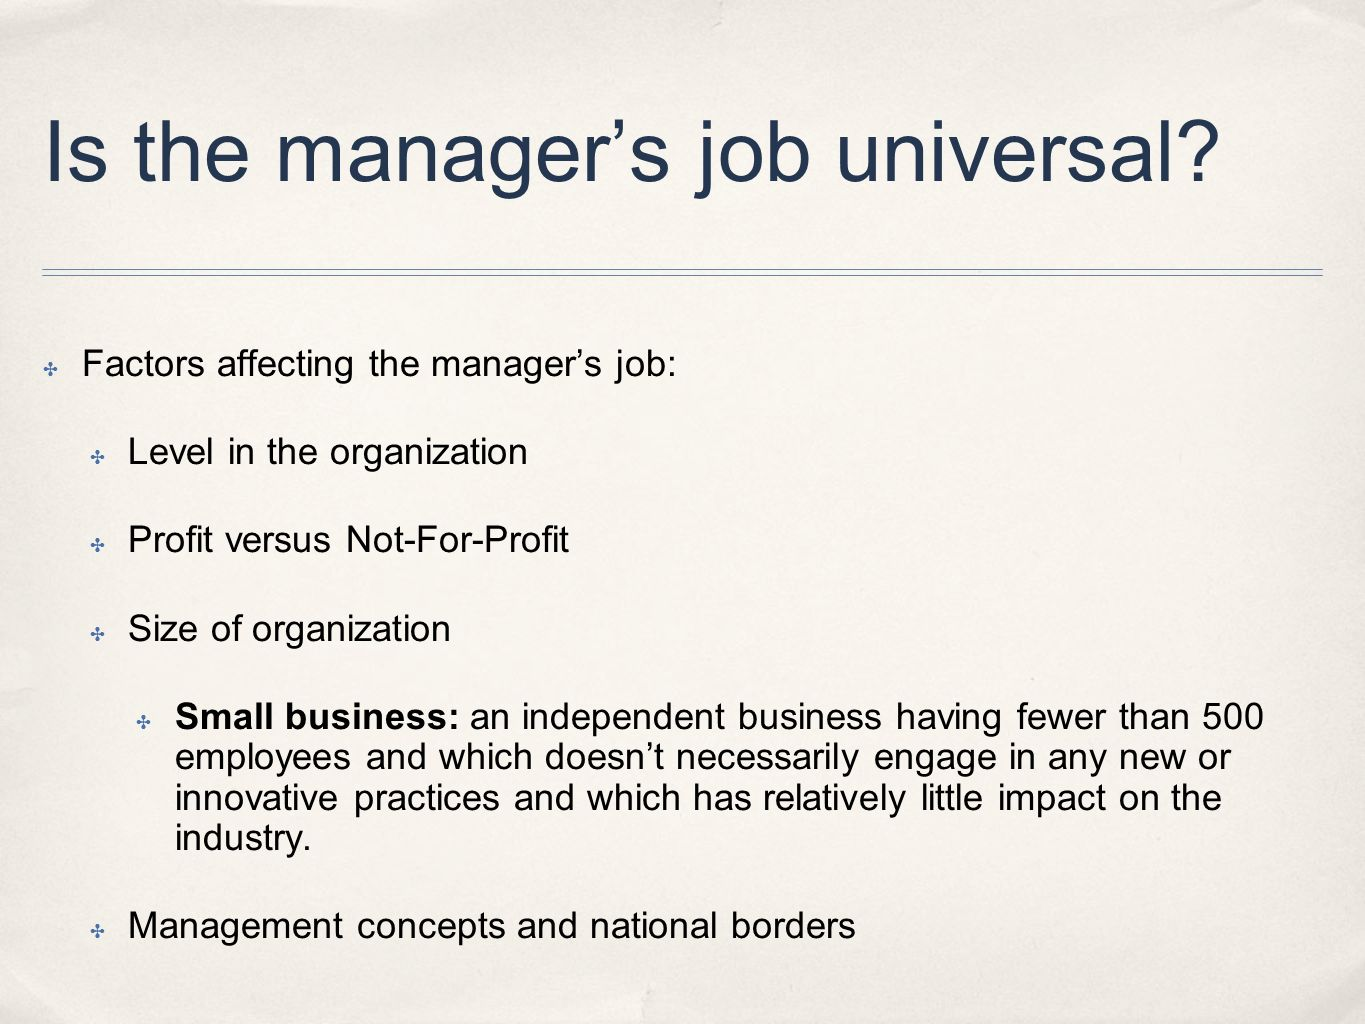 Is the manager's job universal